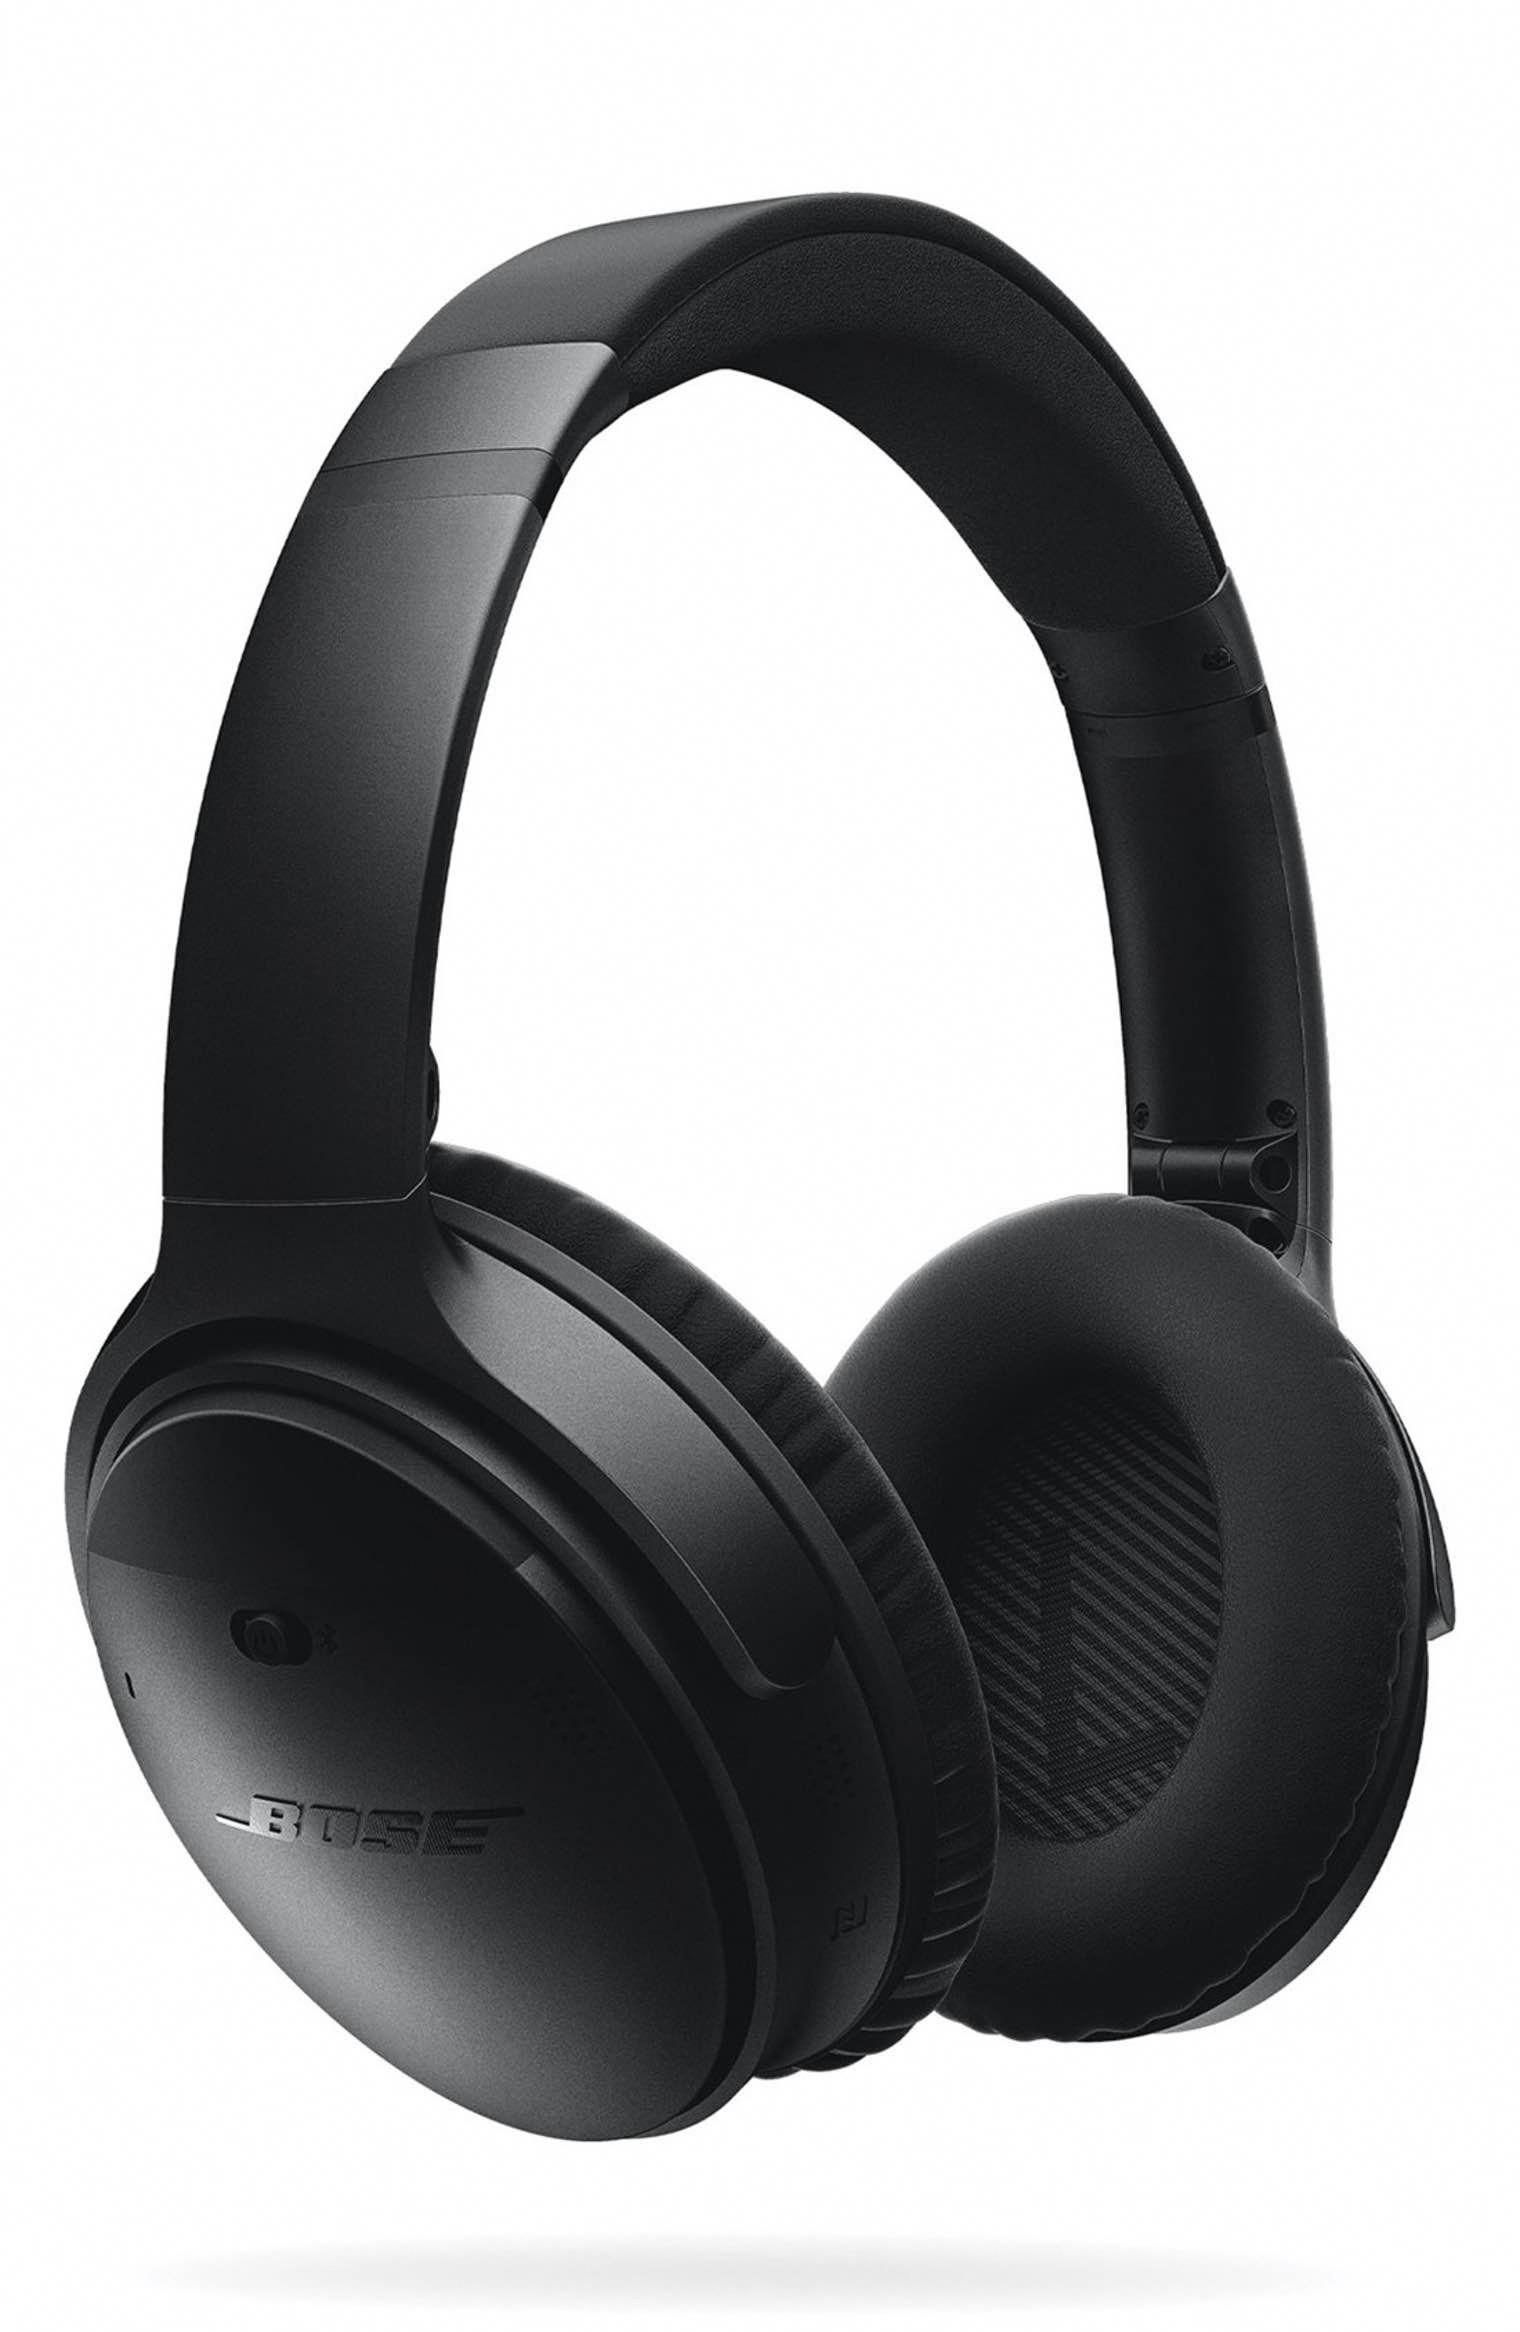 2922b2b5aac Main Image - Bose® QuietComfort® 35 Acoustic Noise Cancelling® Bluetooth®  Headphones